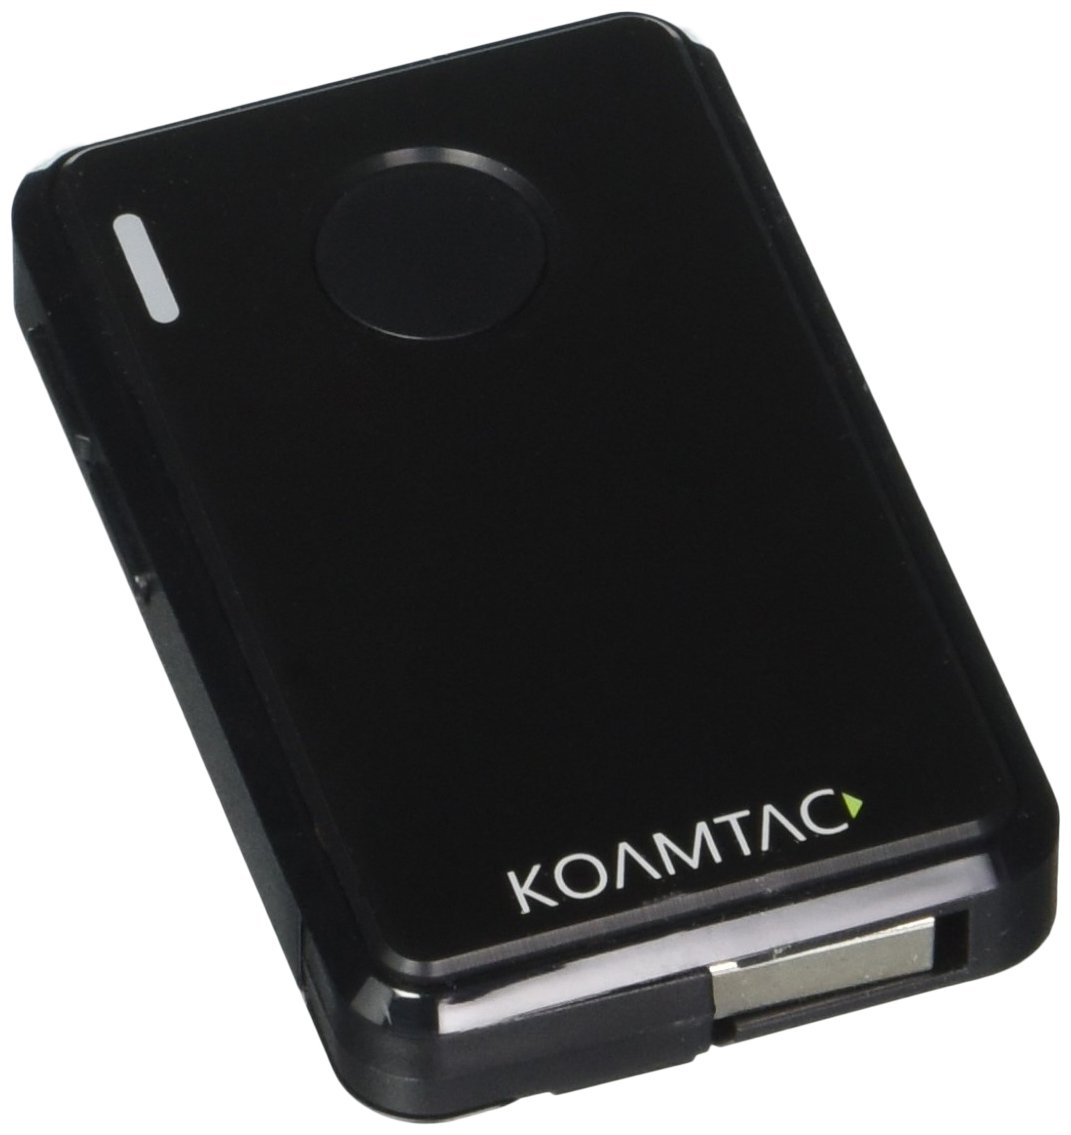 KDC20i Bluetooth Barcode Scanner KOAMTAC Inc. 150042